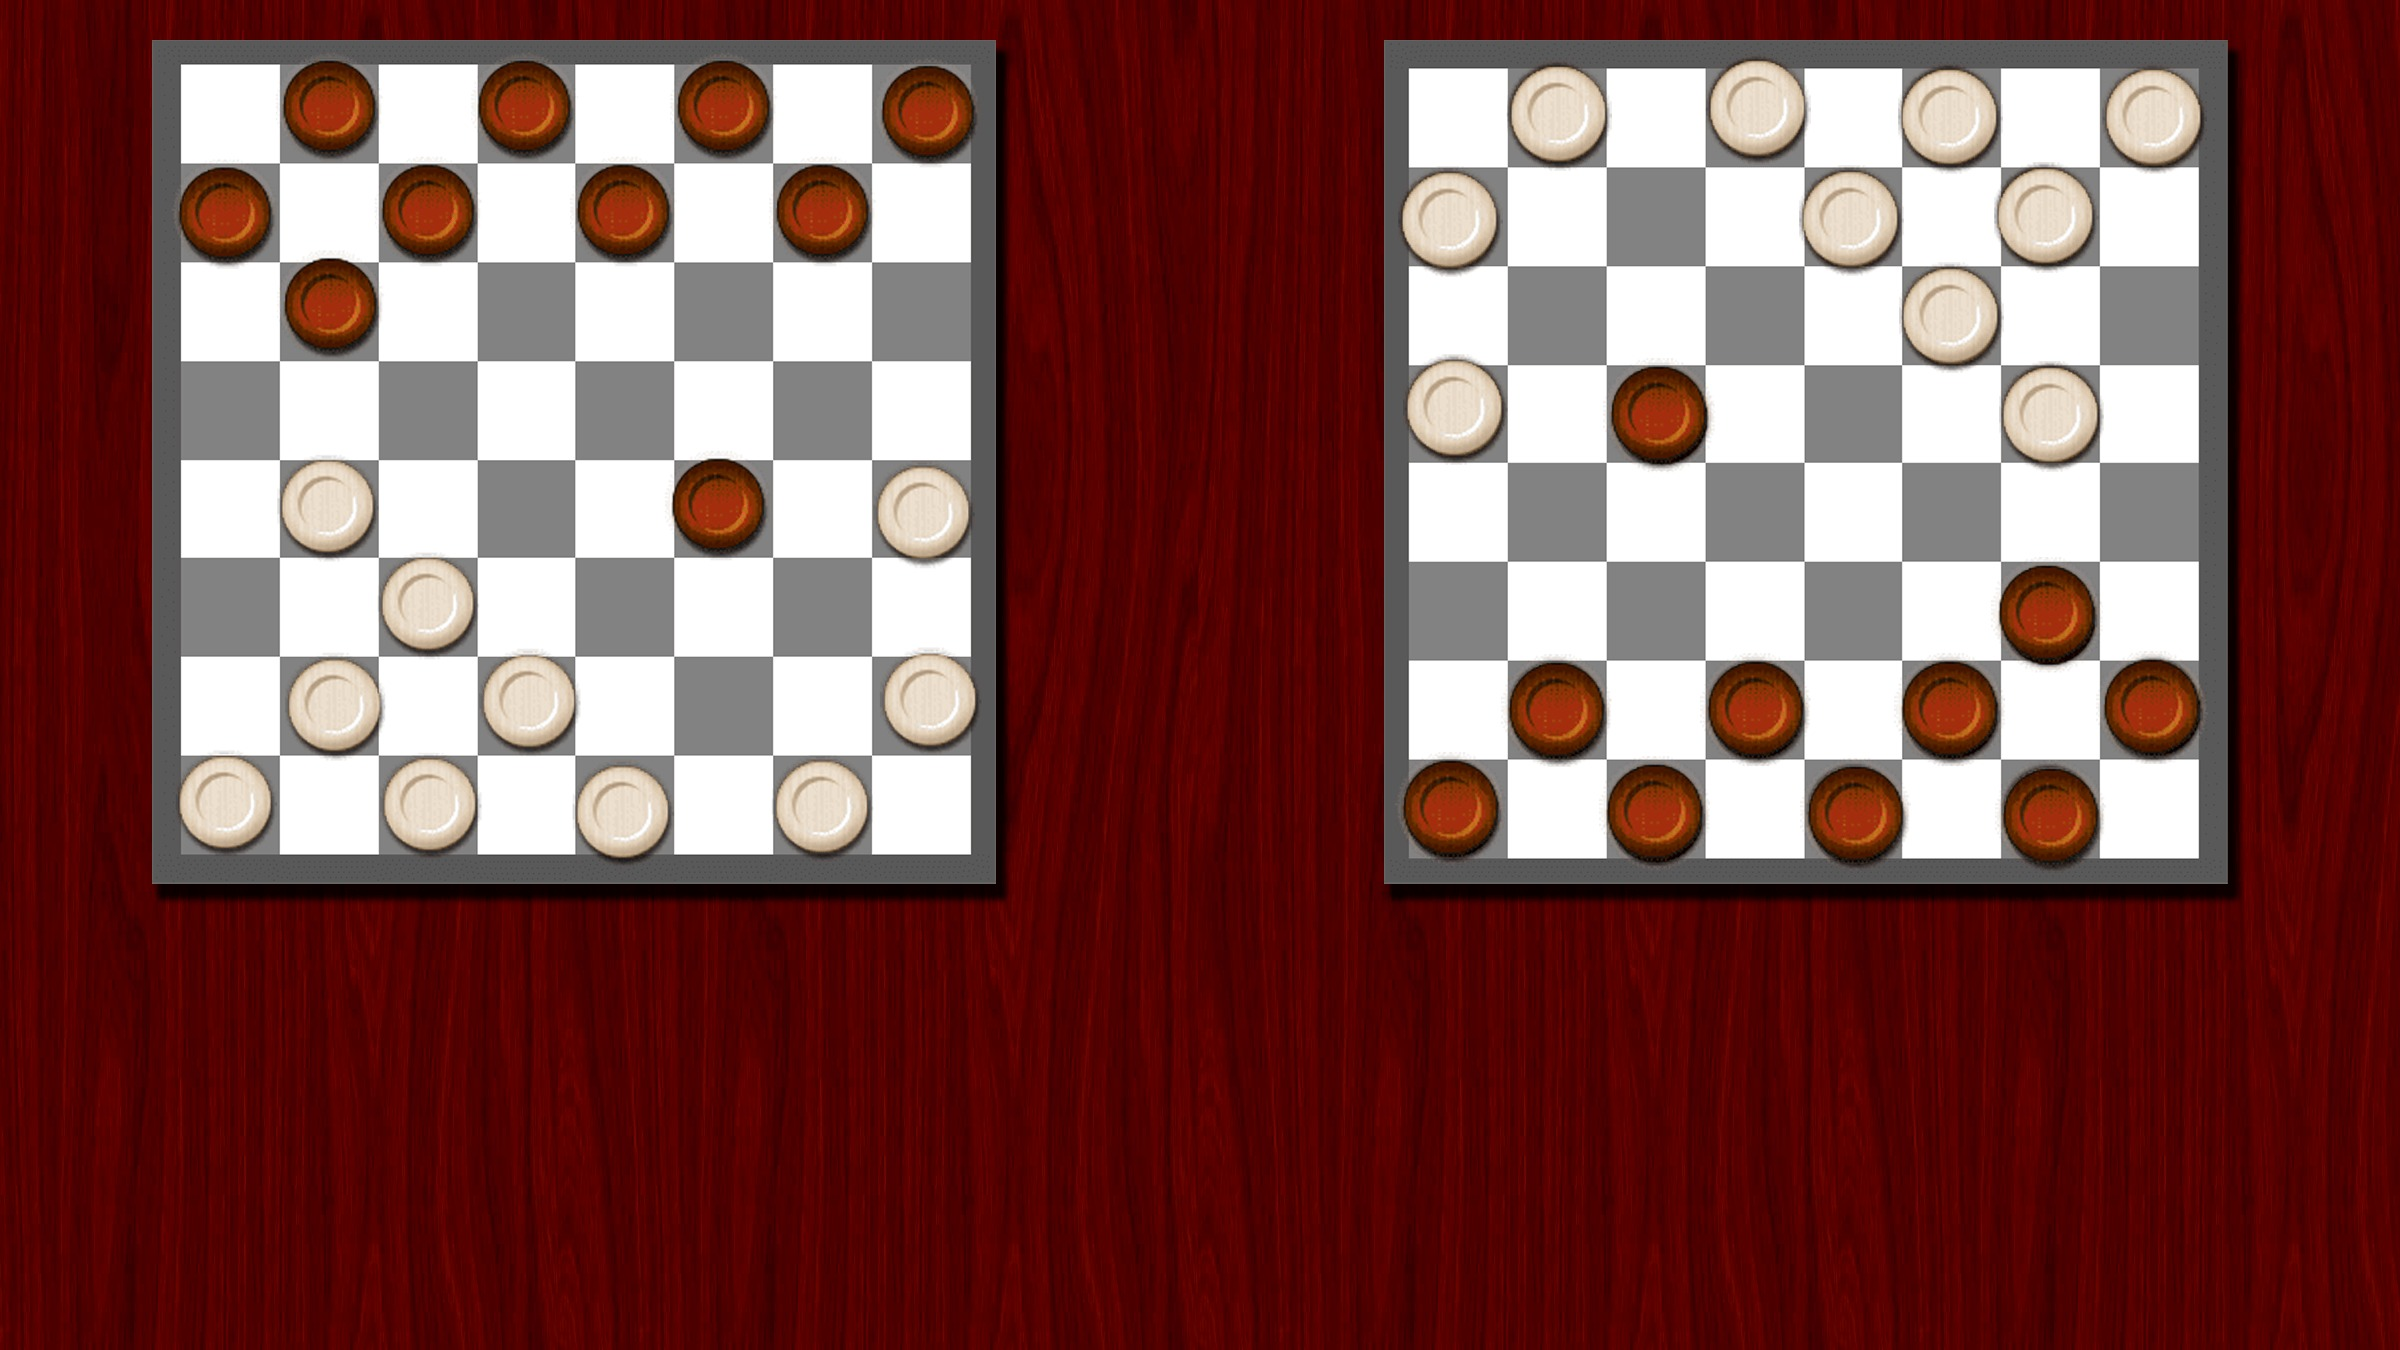 Checkers Classic - Play games anywhere,anytime